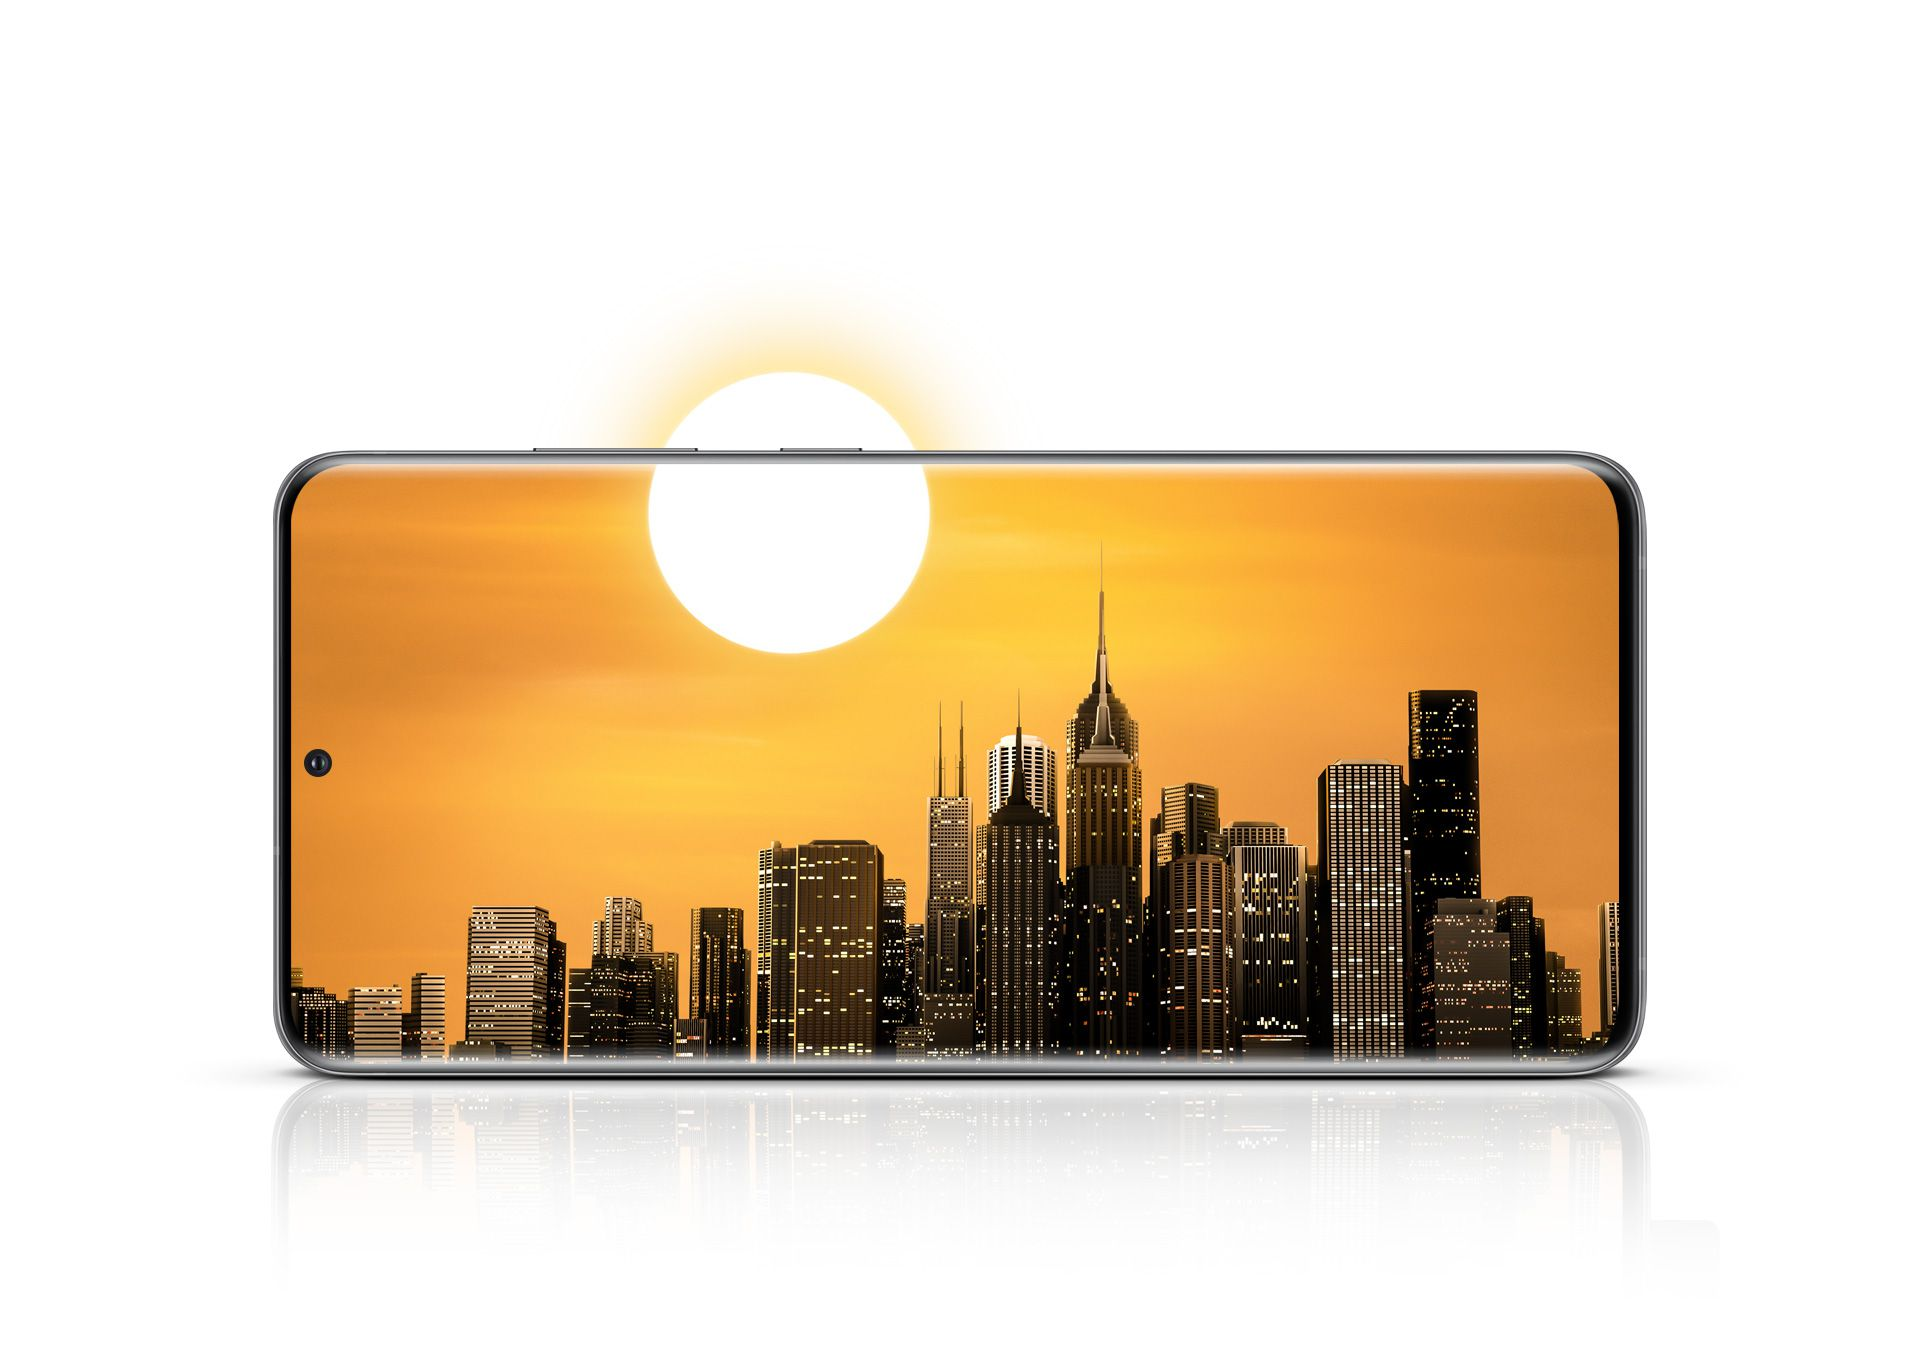 Galaxy S20 Ultra seen from the front in landscape mode. The sun shown on-screen illustrates the all-day battery's longevity.